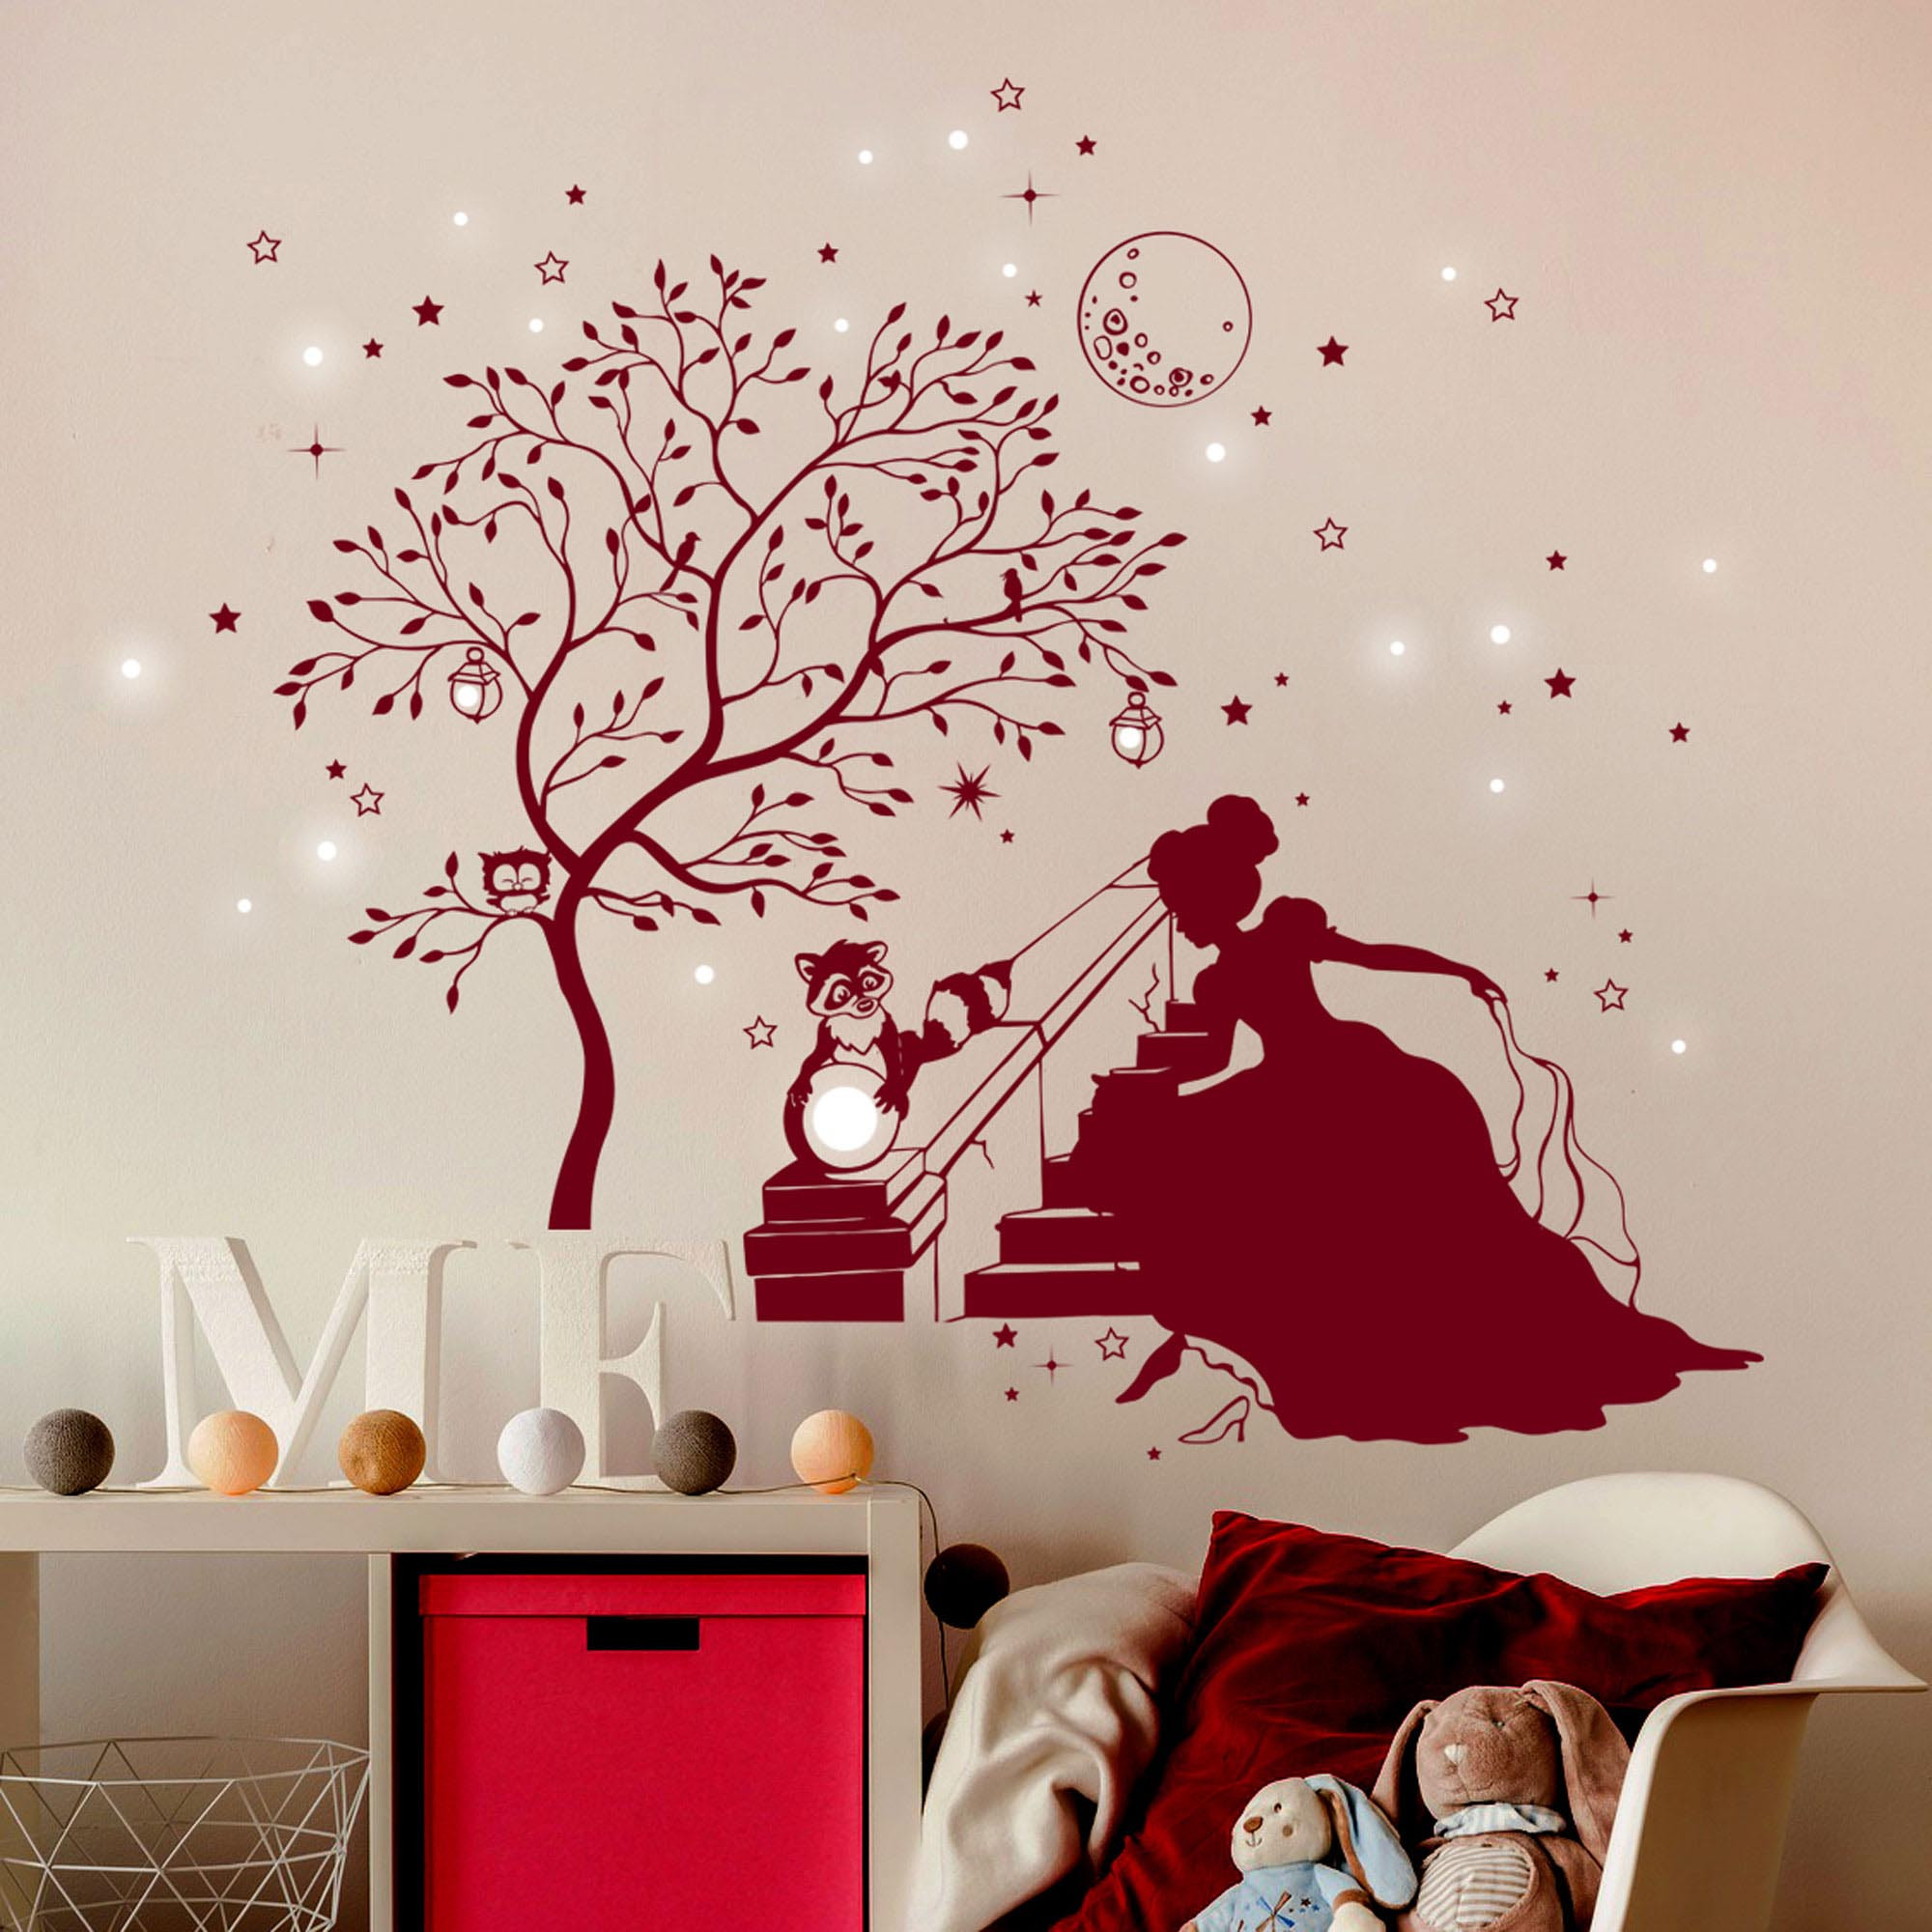 wandtattoo prinzessin cinderella mit zauberbaum waschb r hase und fluoreszierende sterne m1716. Black Bedroom Furniture Sets. Home Design Ideas